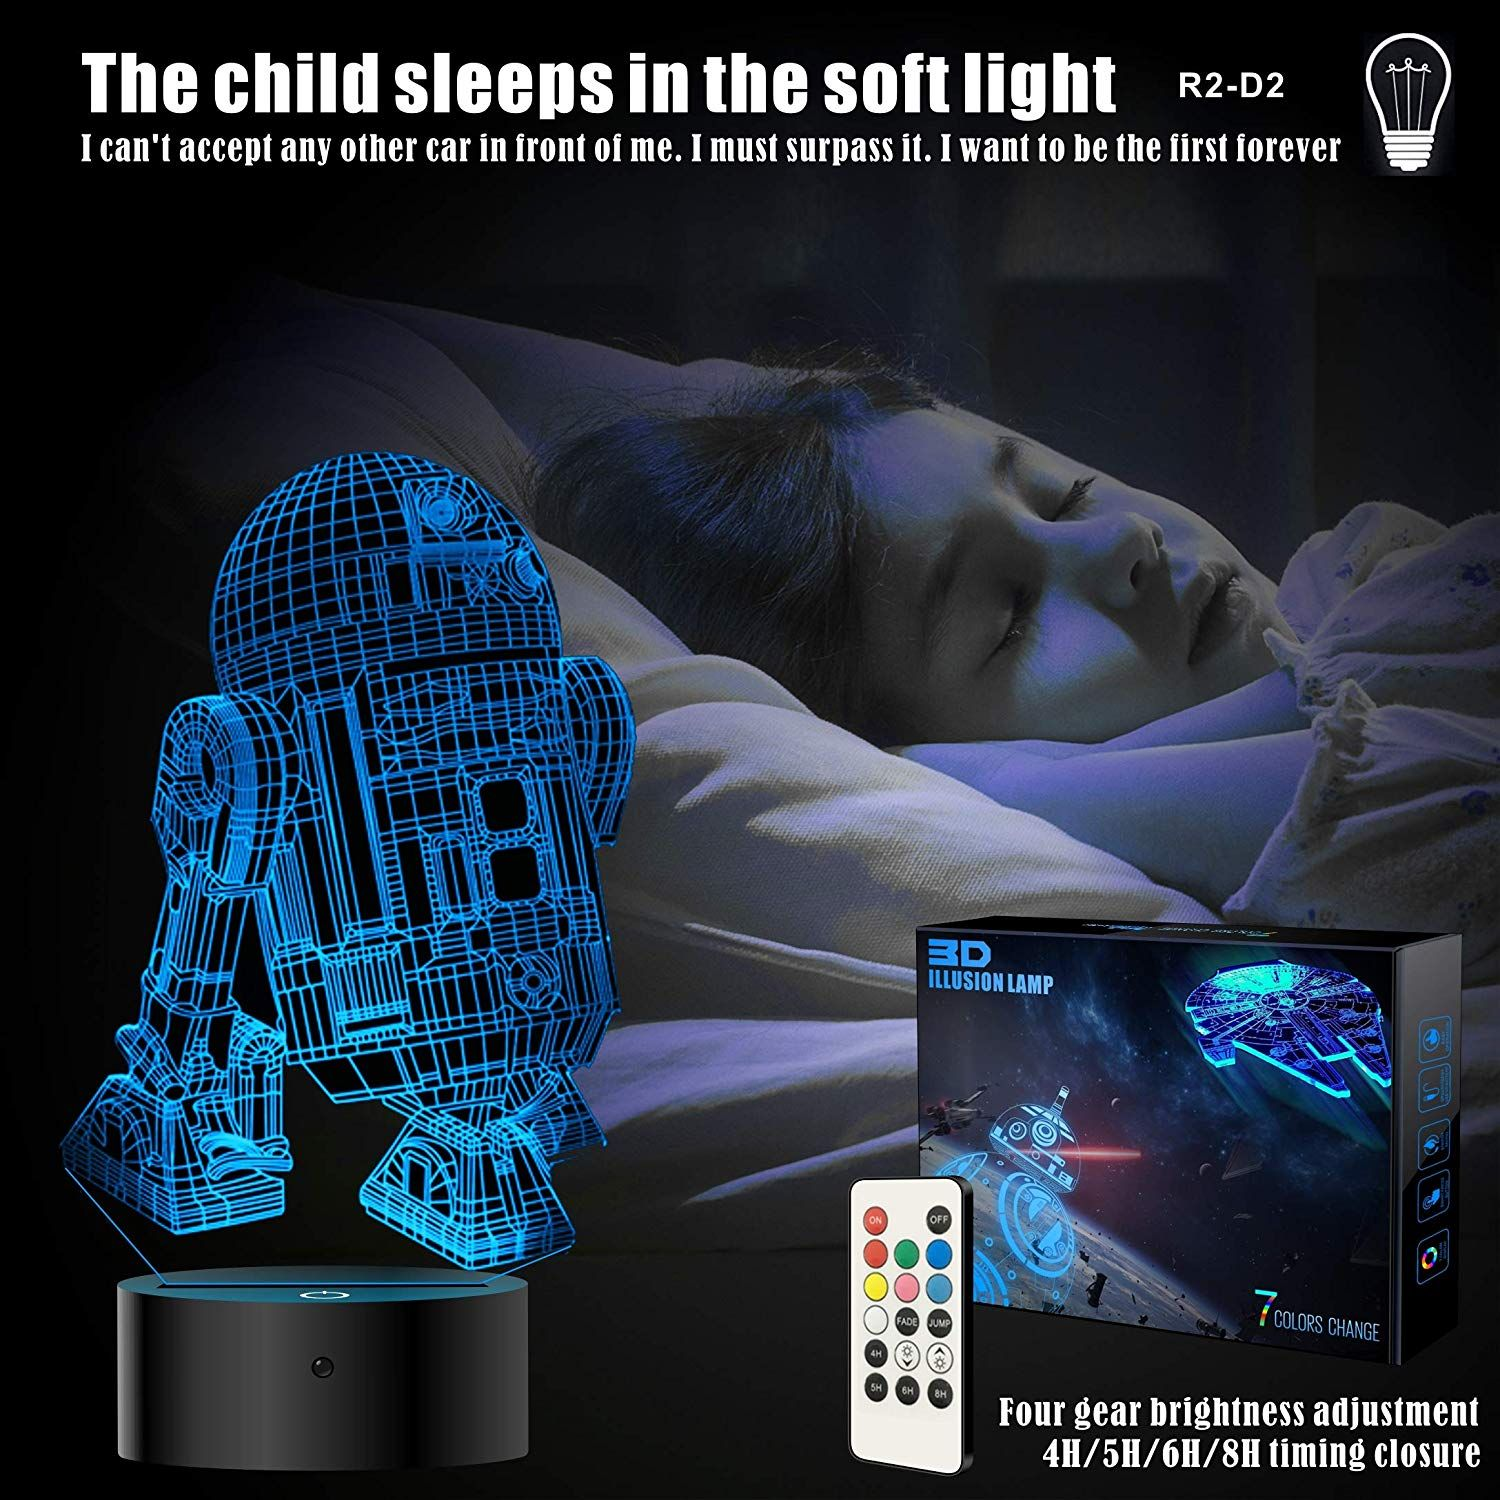 2 Bases Star Wars Gifts 3d Illusion Lamp Star Wars Toys Led Night Light For Kids Room Decor 4 Patterns Star Wars Gifts Star Wars Night Light Kid Room Decor